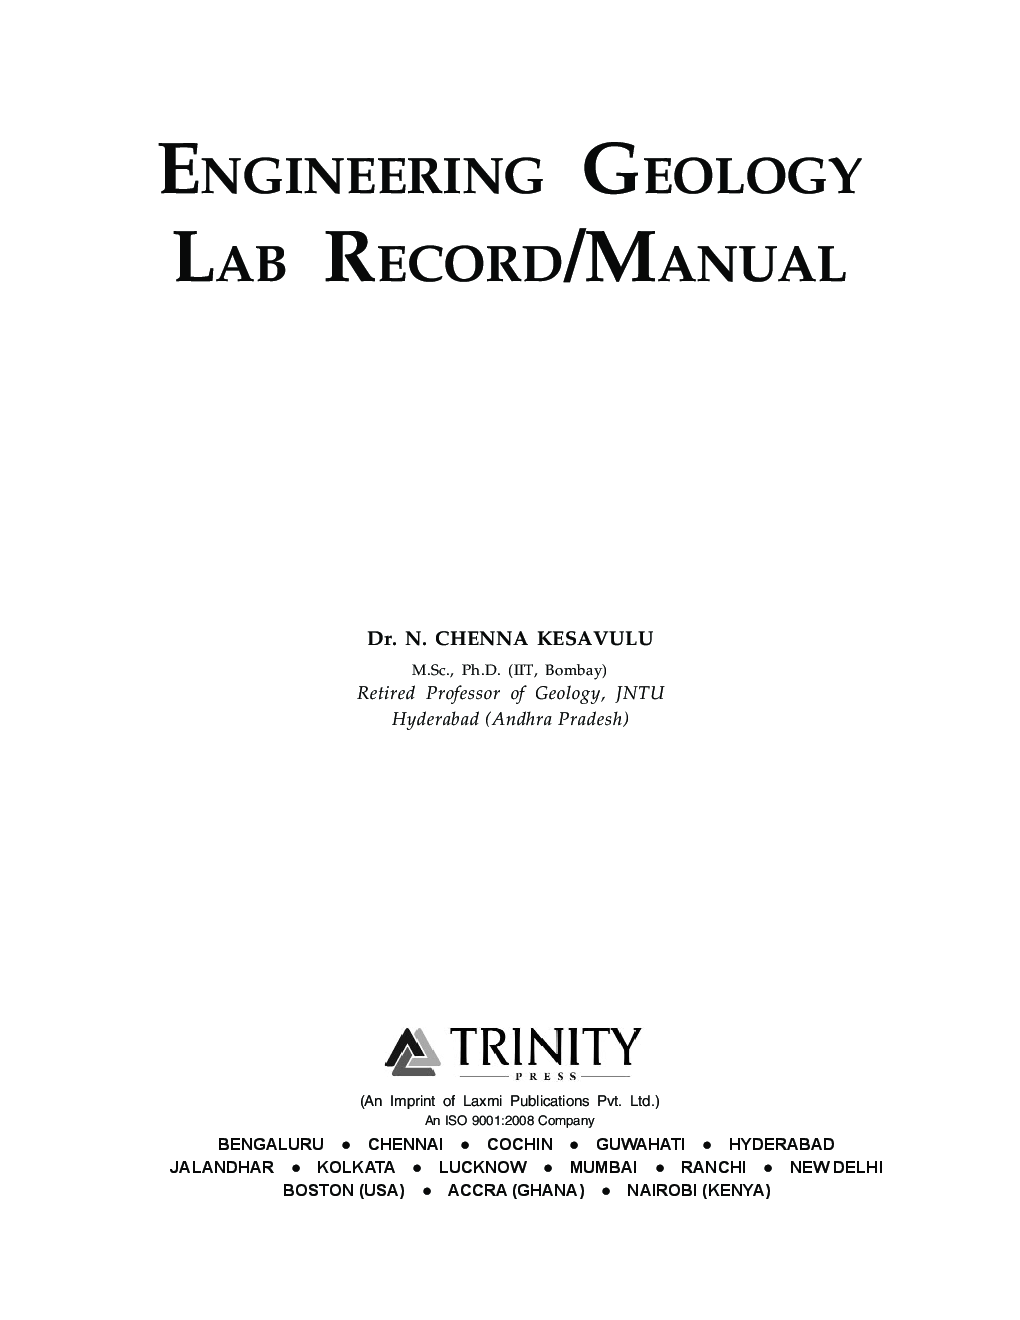 download engineering geology lab record by dr n chenna kesavulu rh kopykitab com Geology Labs Virtual Earthquake Geotechnical Testing Lab